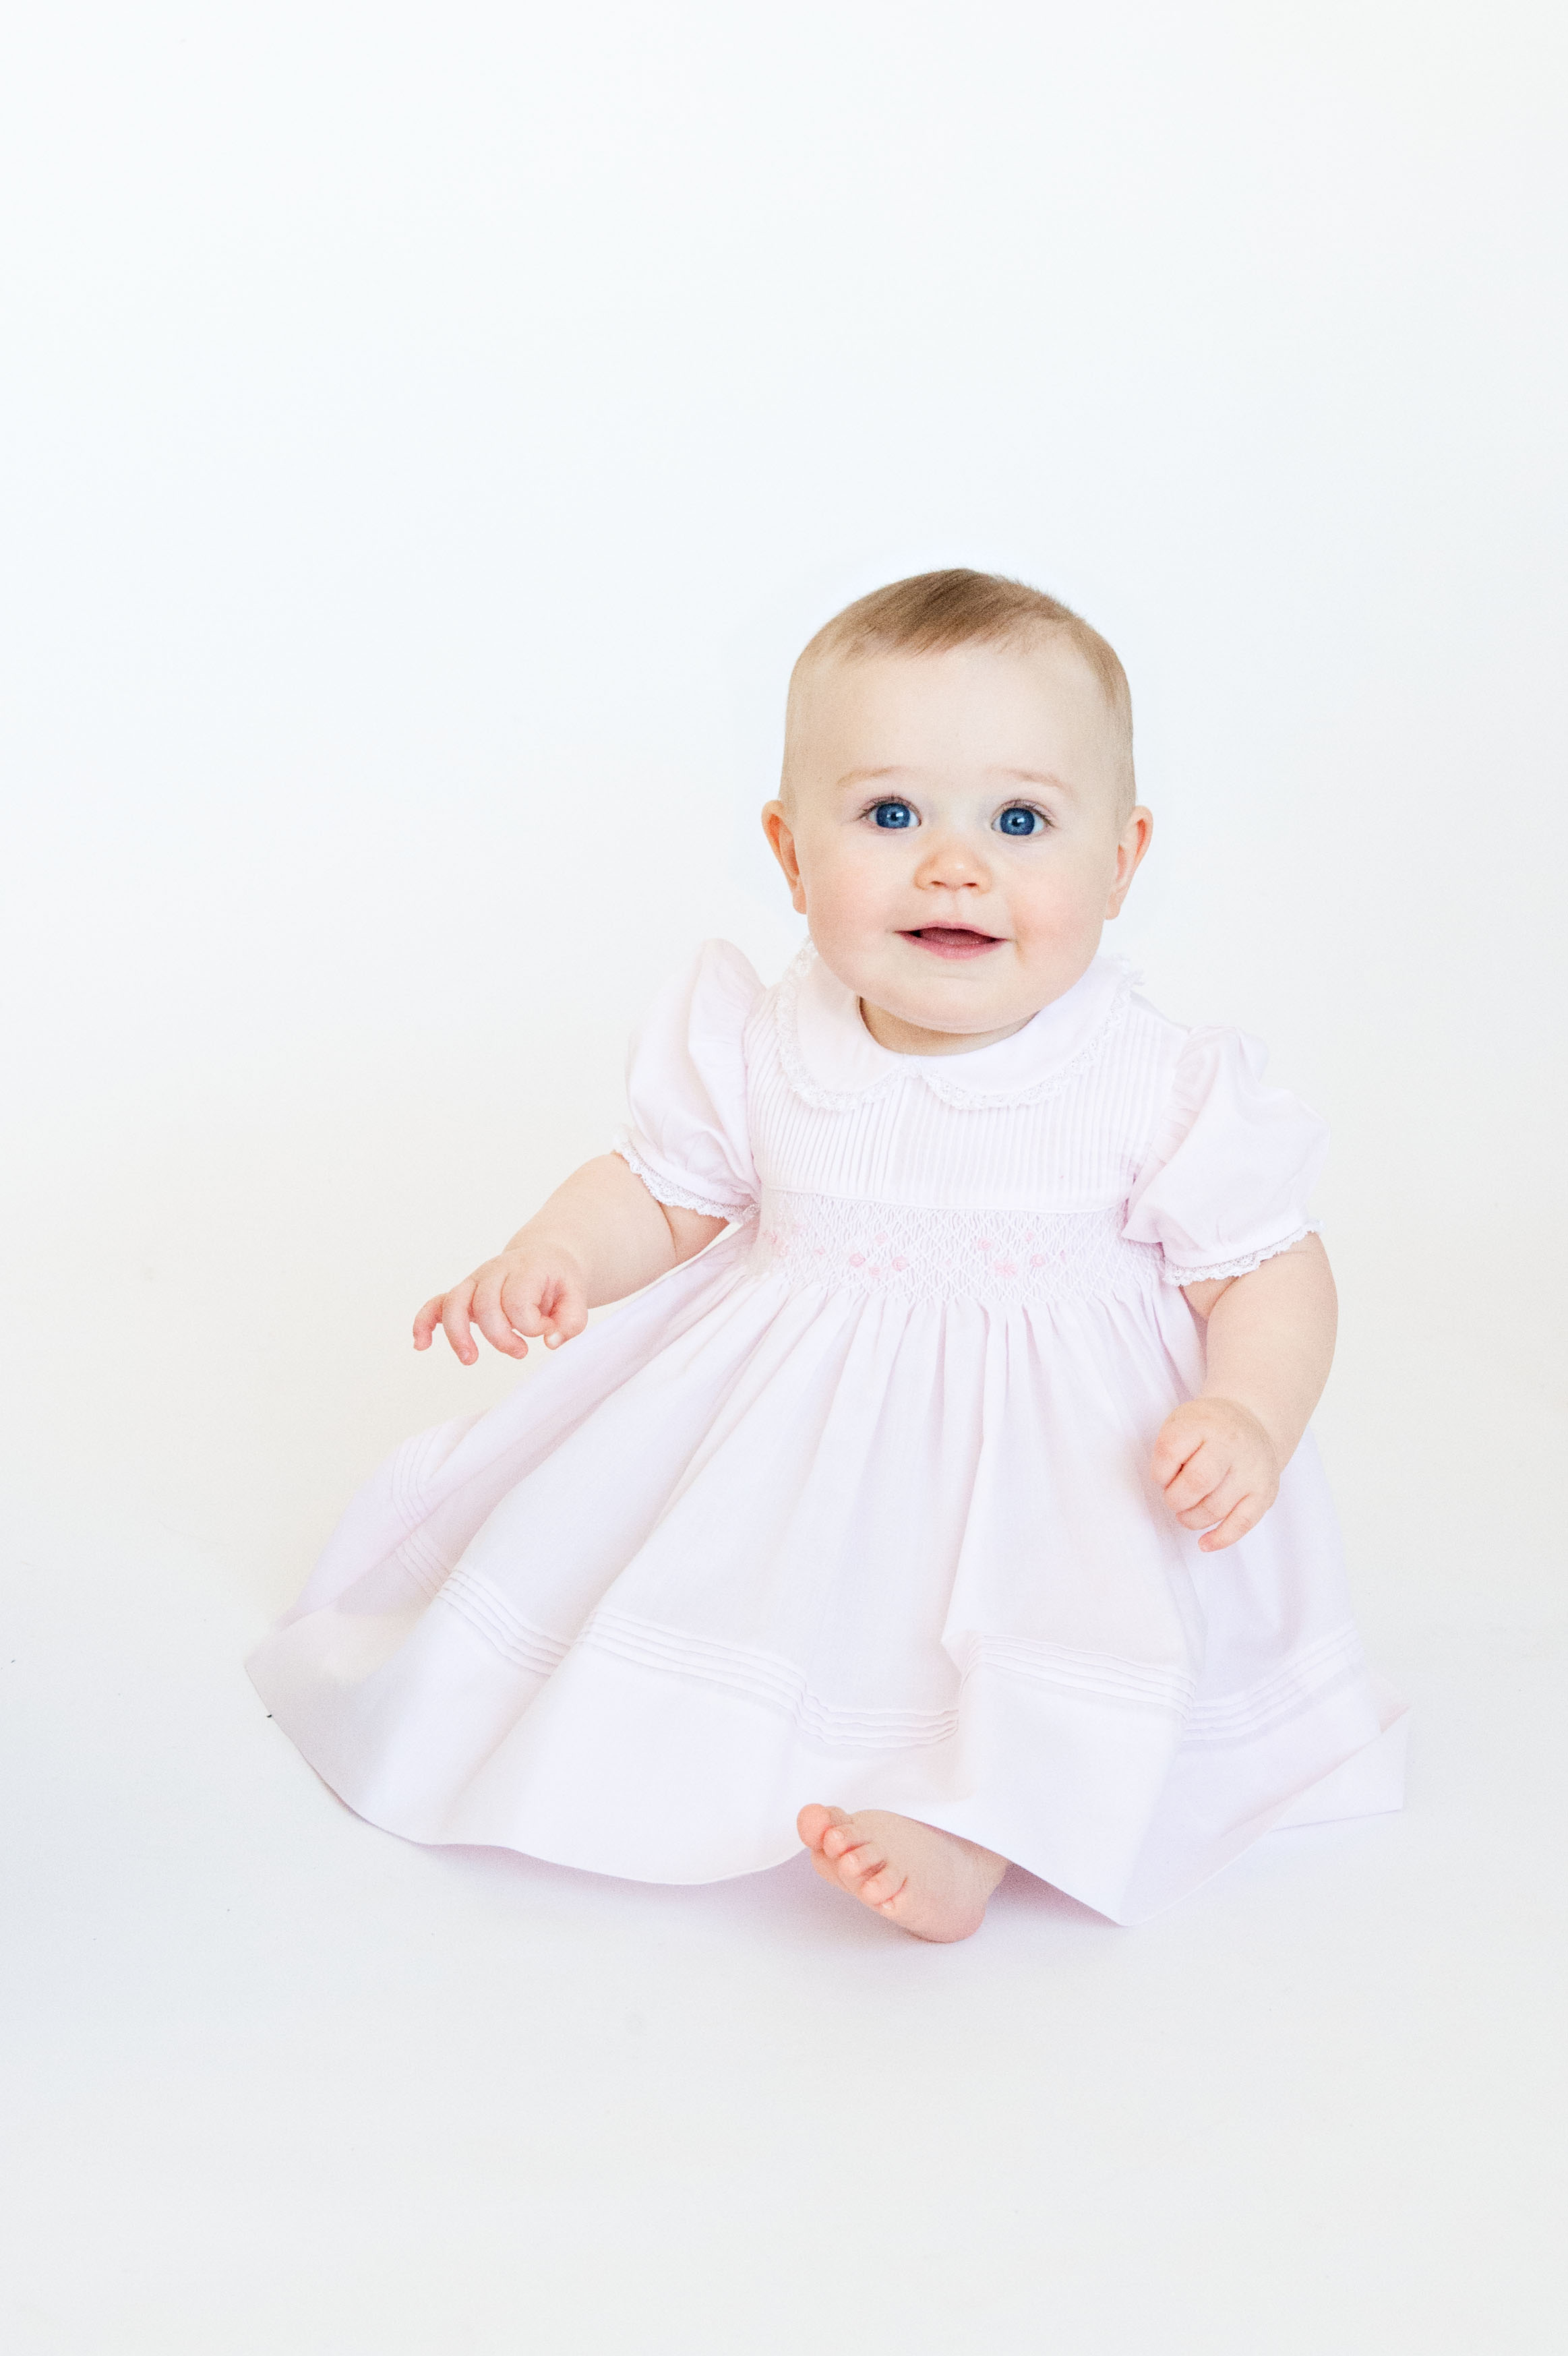 Baby A turns 9 mths |child photography